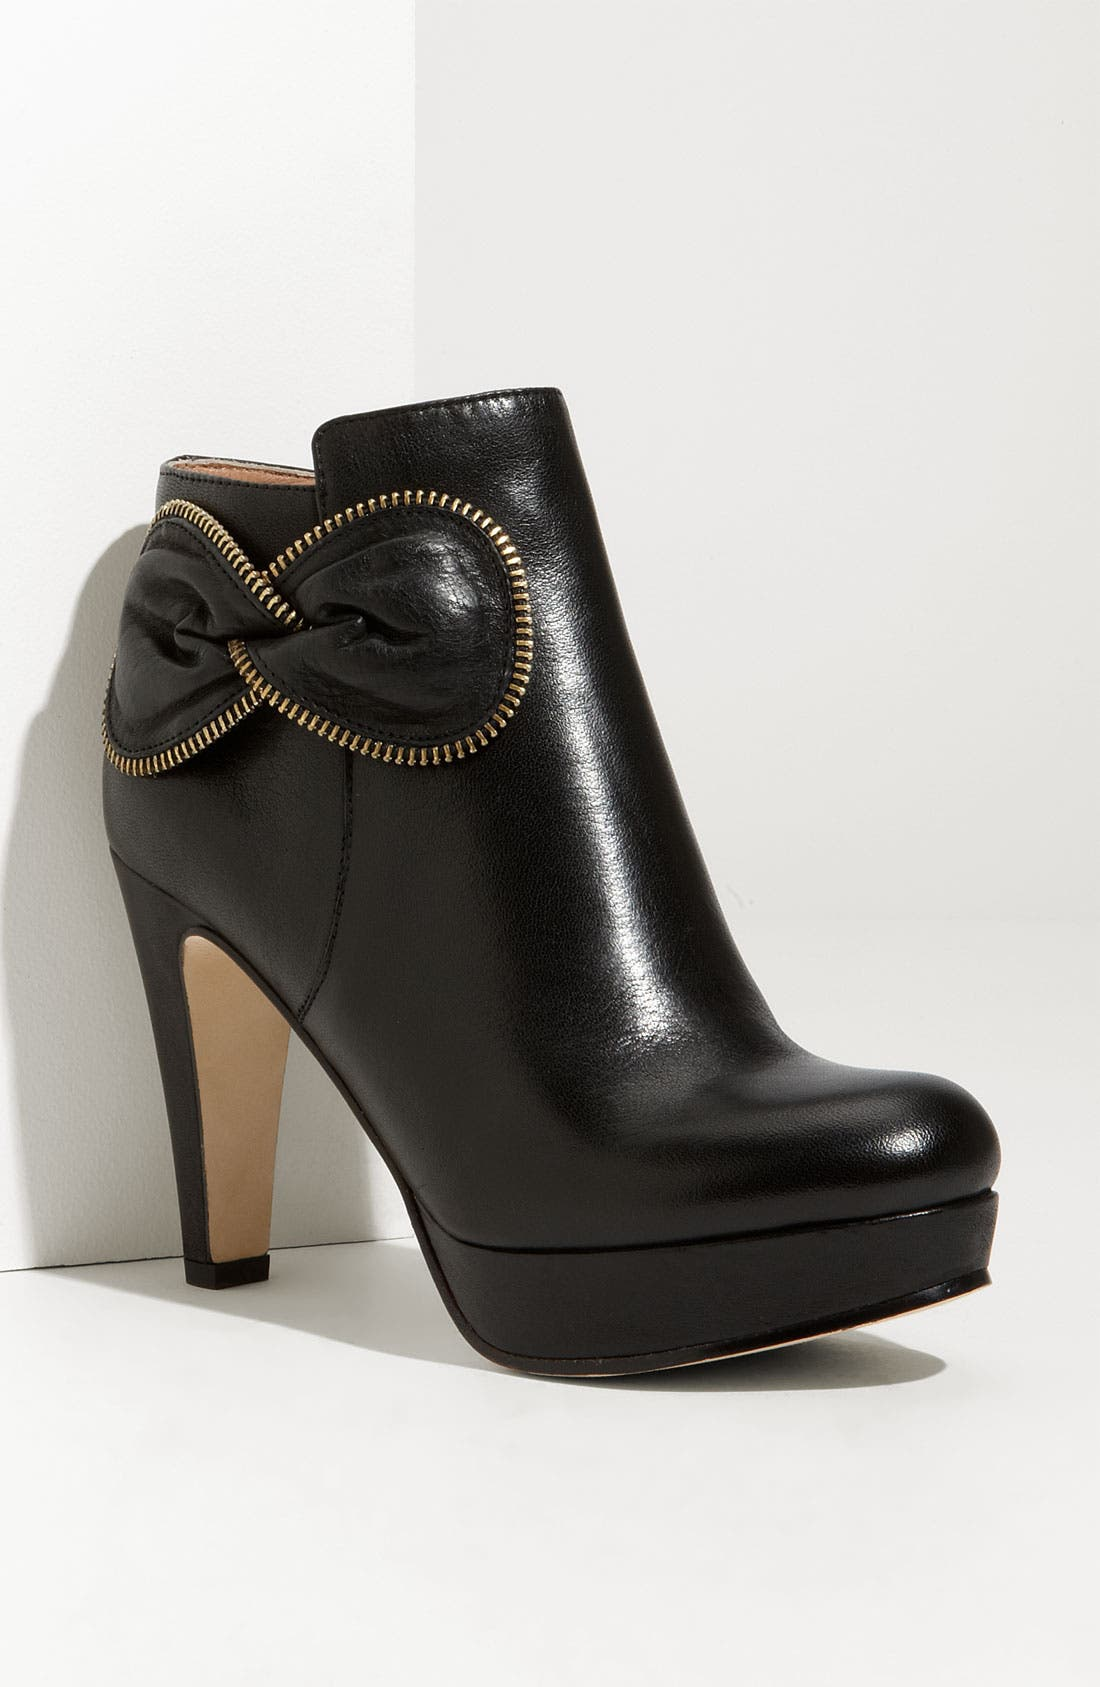 Main Image - See by Chloé Zip Bow Leather Bootie